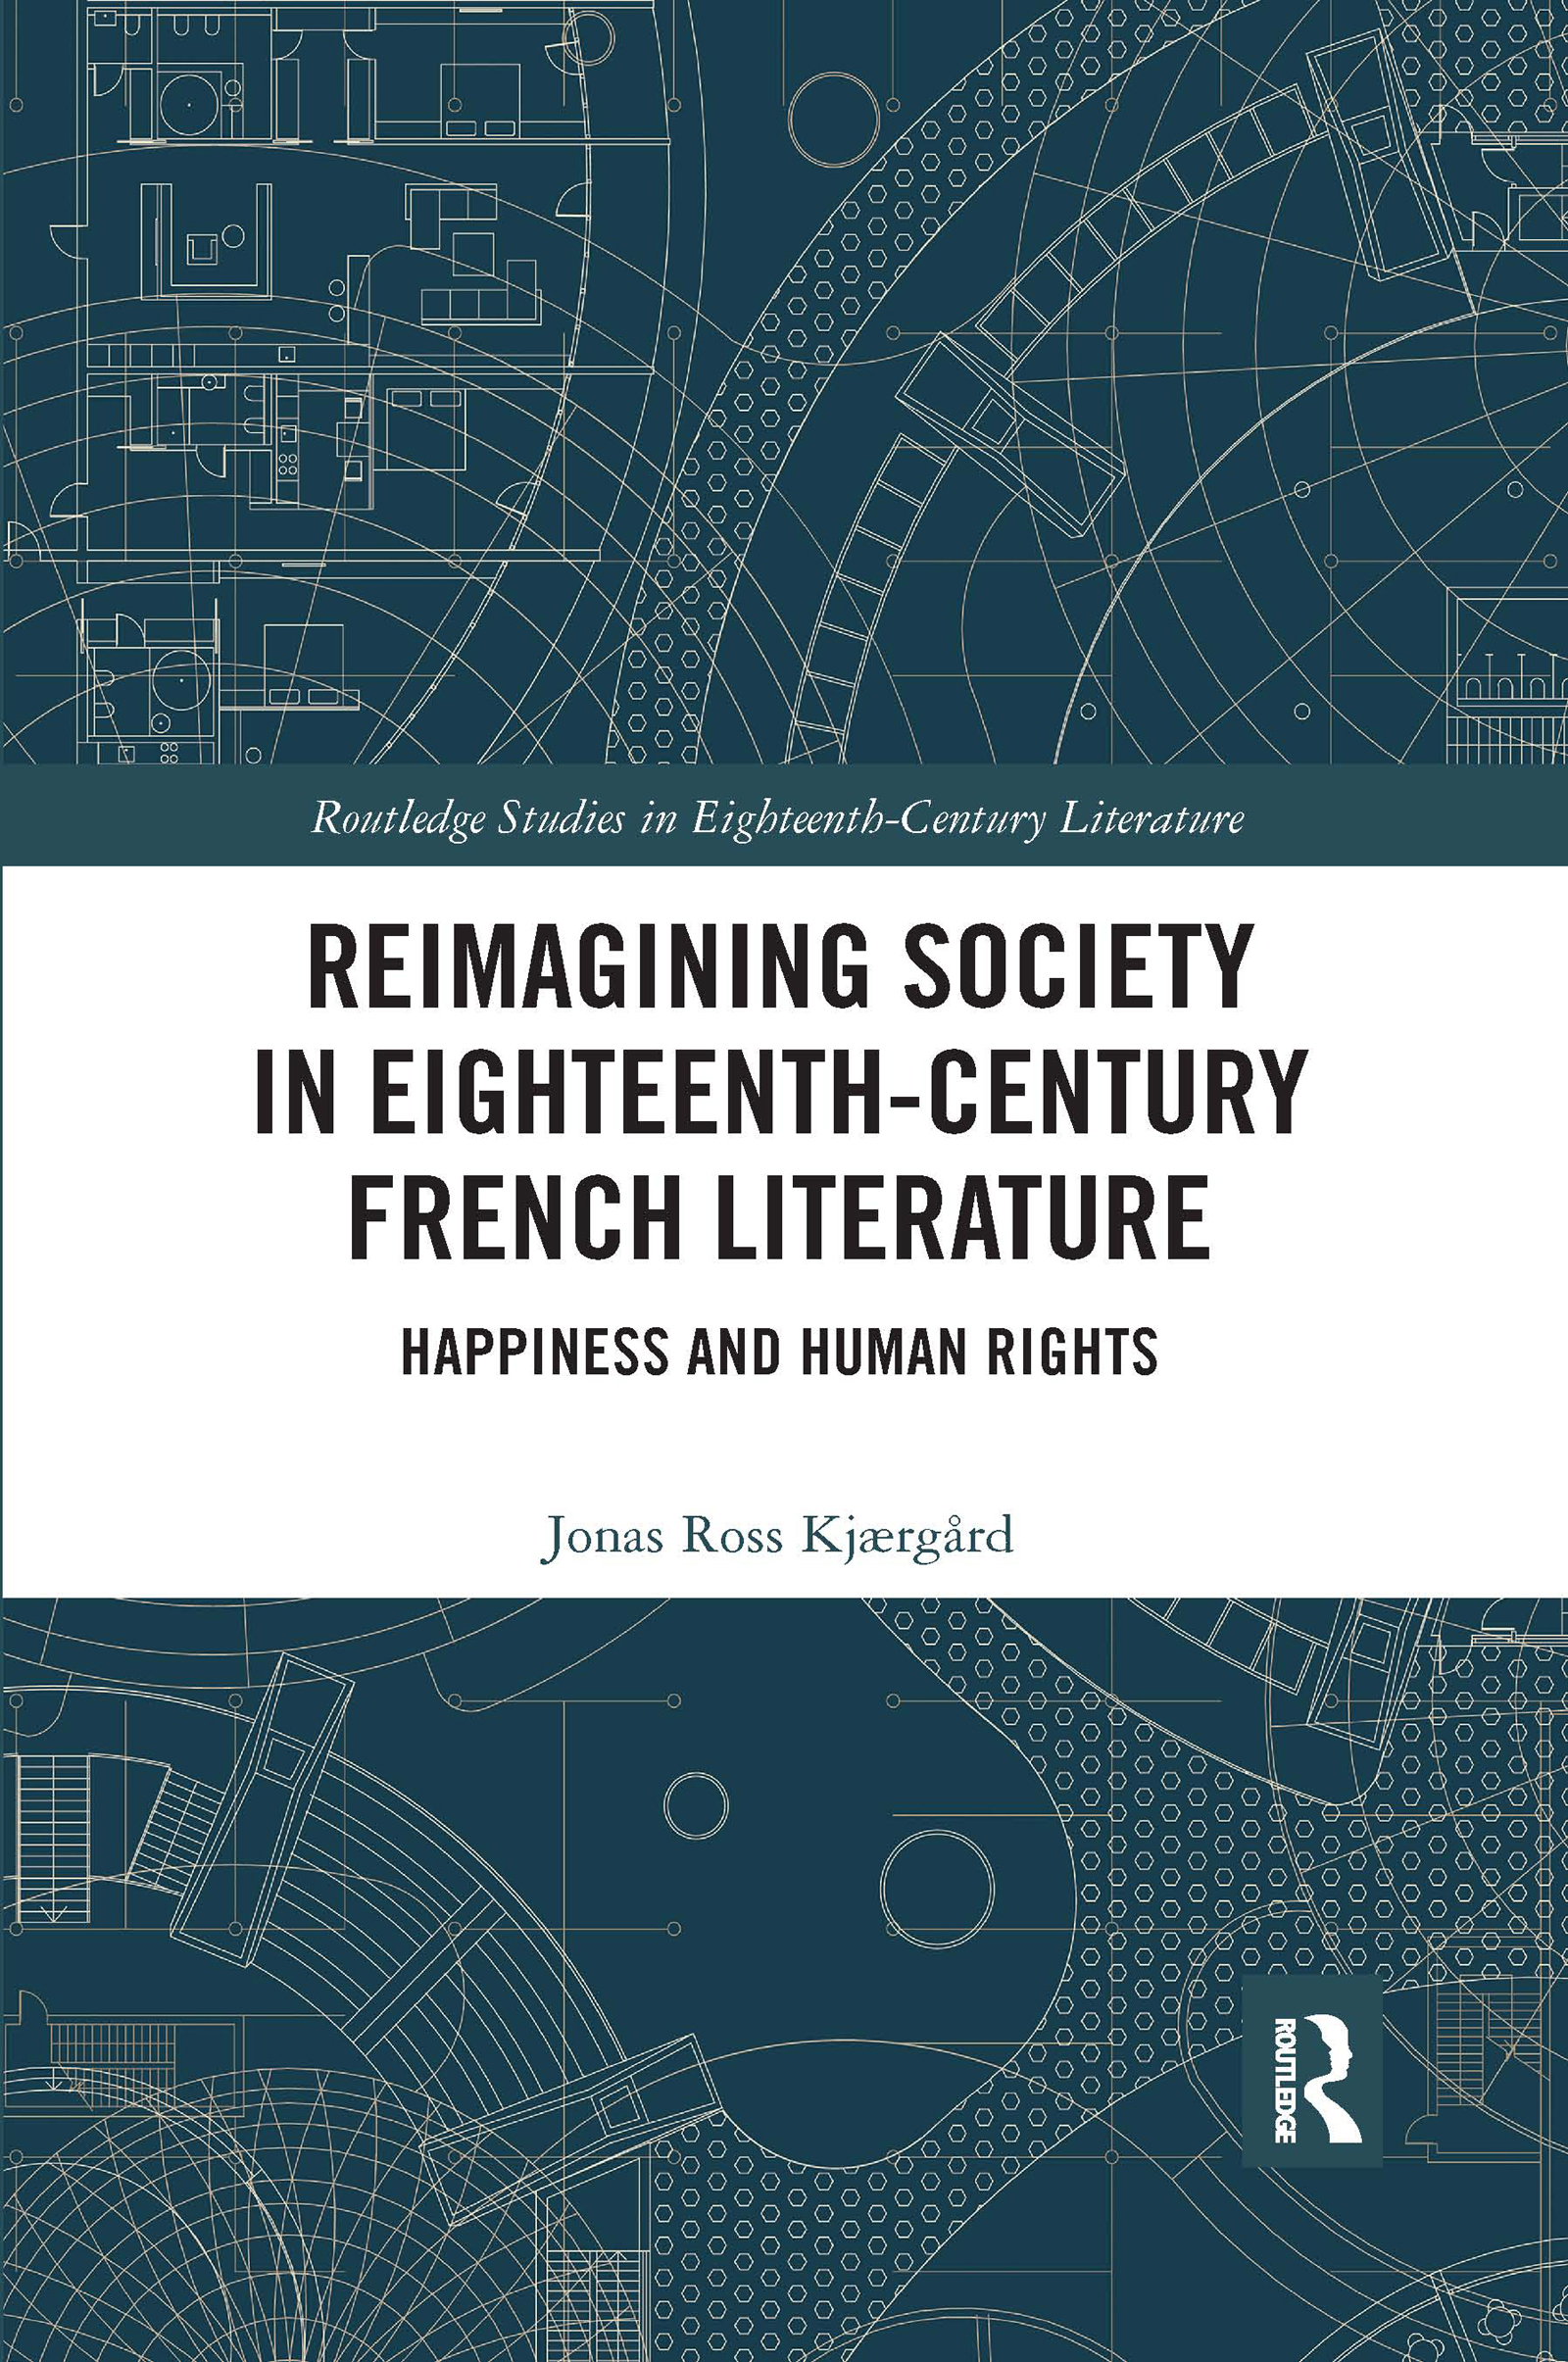 Reimagining Society in Eighteenth-Century French Literature